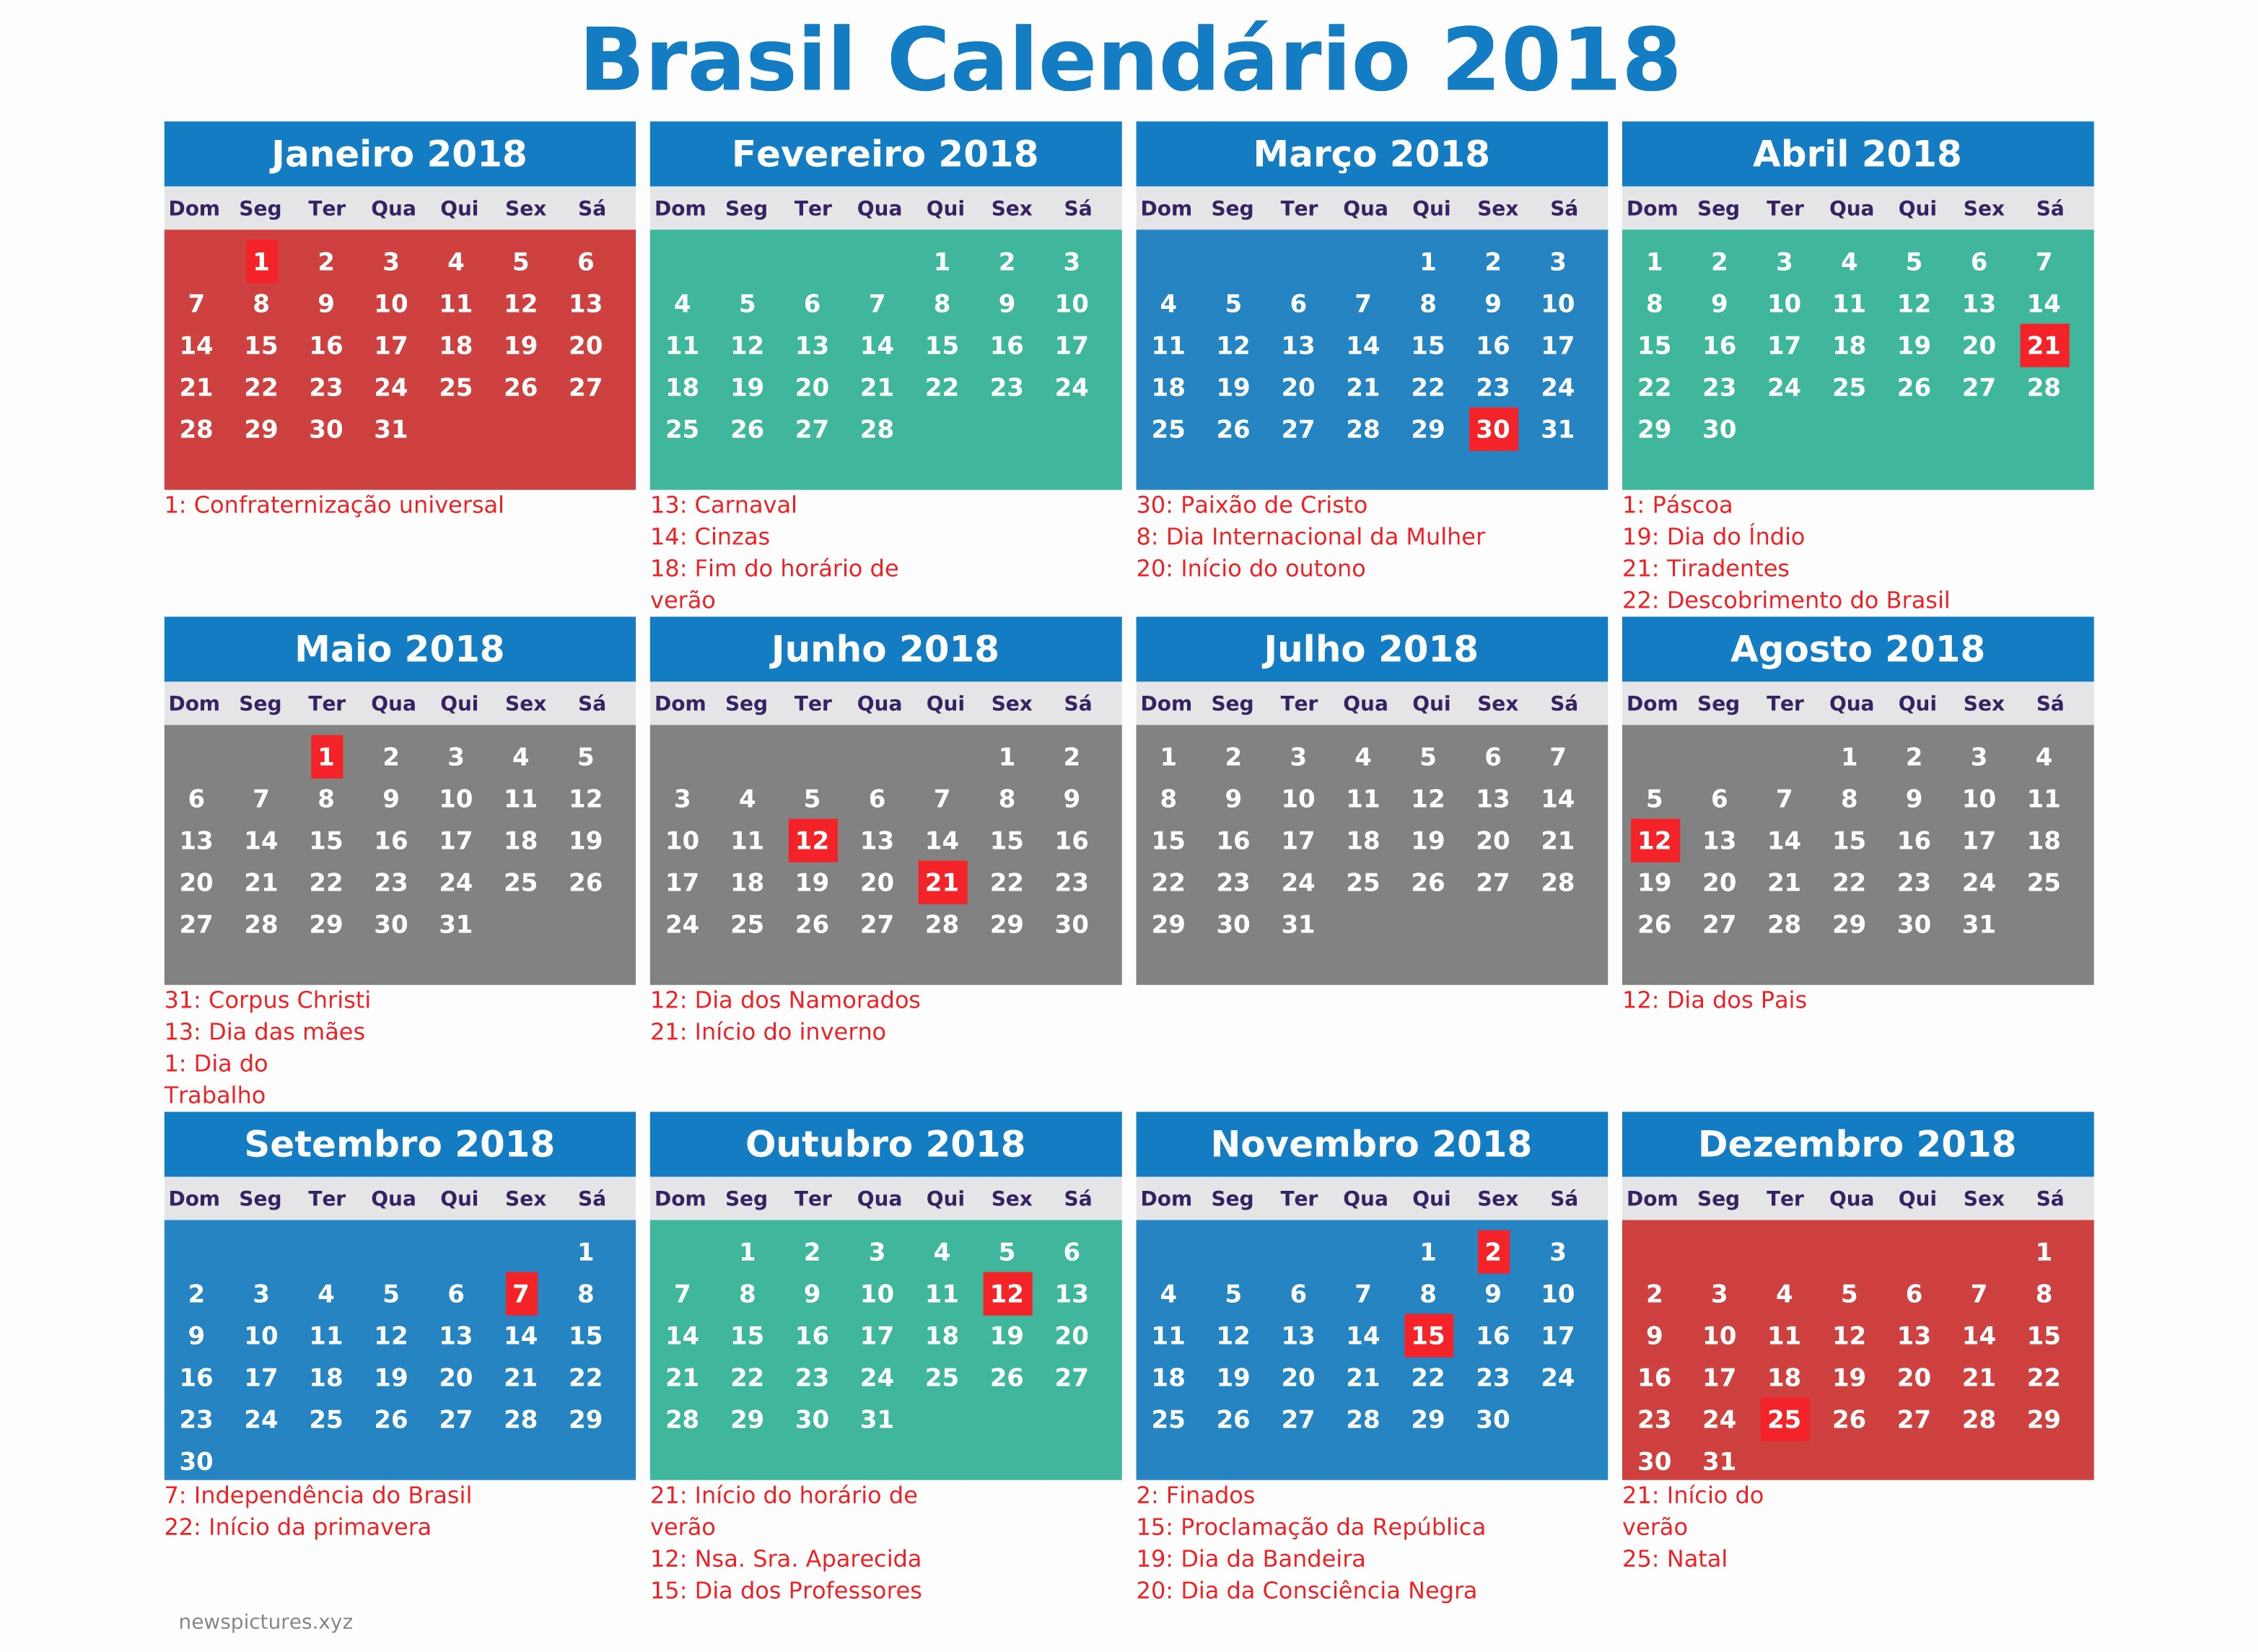 Calendario De Amor Letra 2019 Calendario 2018 Pdf Para Imprimir Download Gratis toda